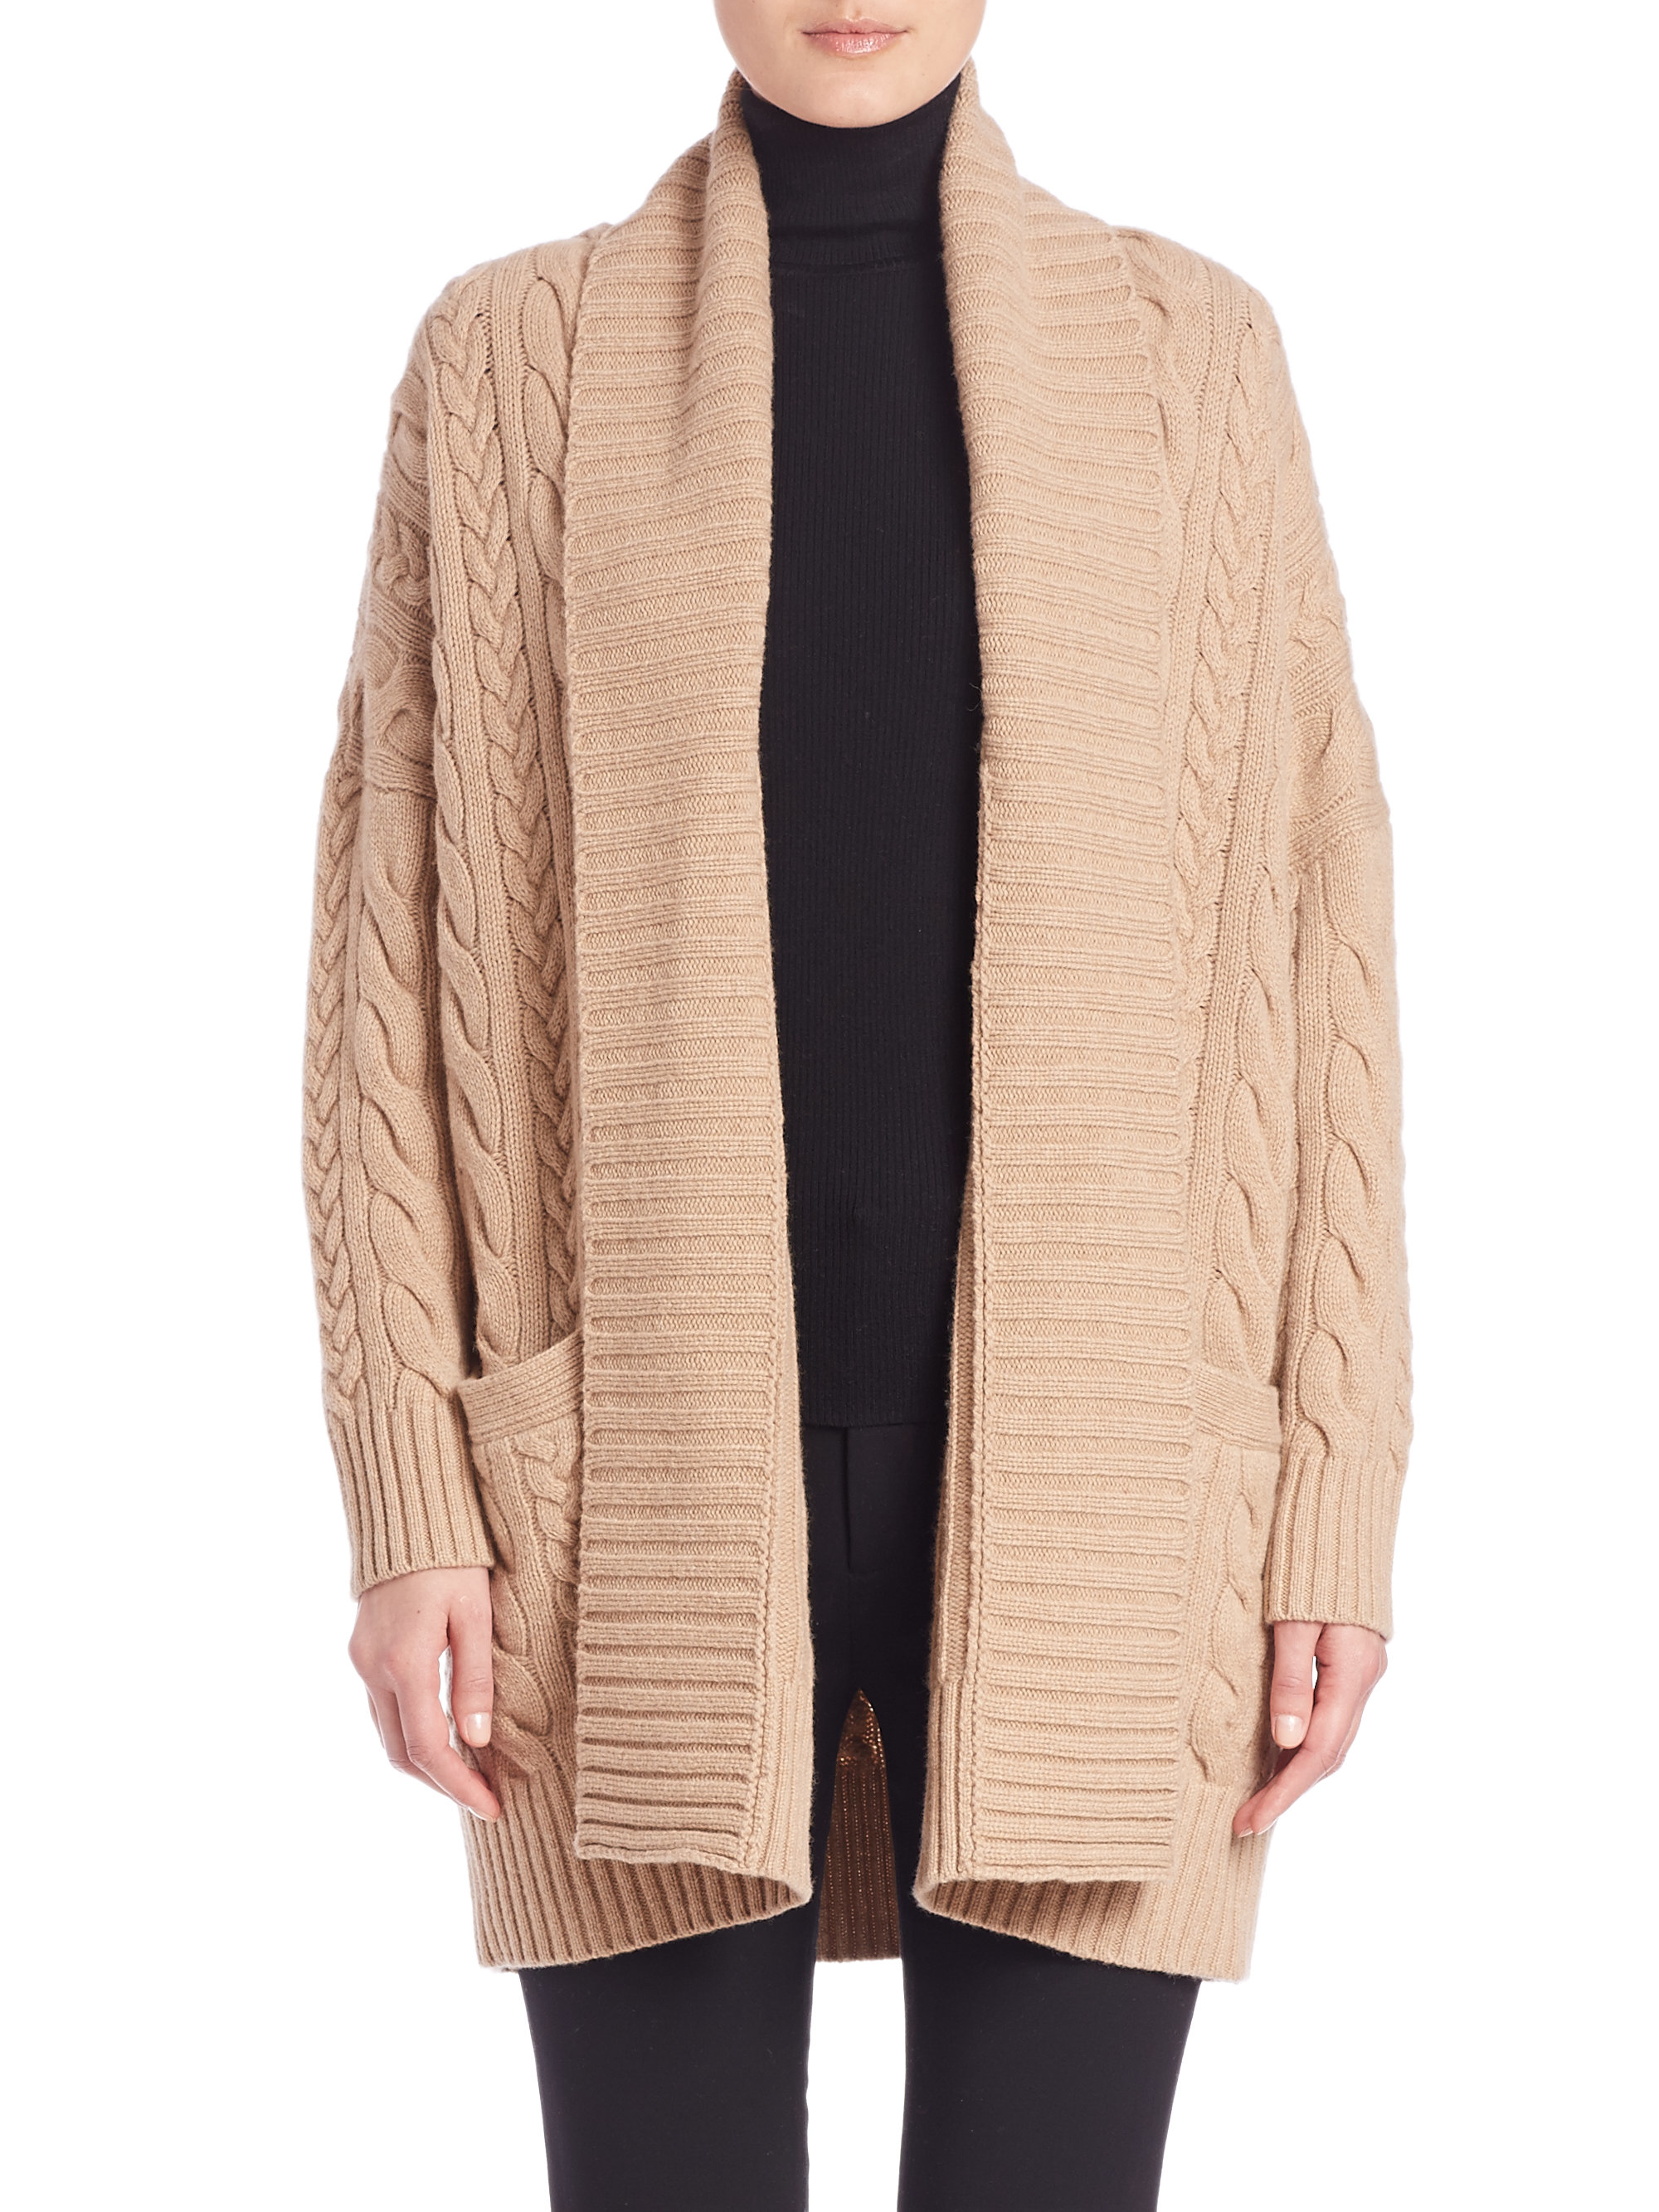 Polo ralph lauren Wool & Cashmere Cabled Cardigan in Natural | Lyst